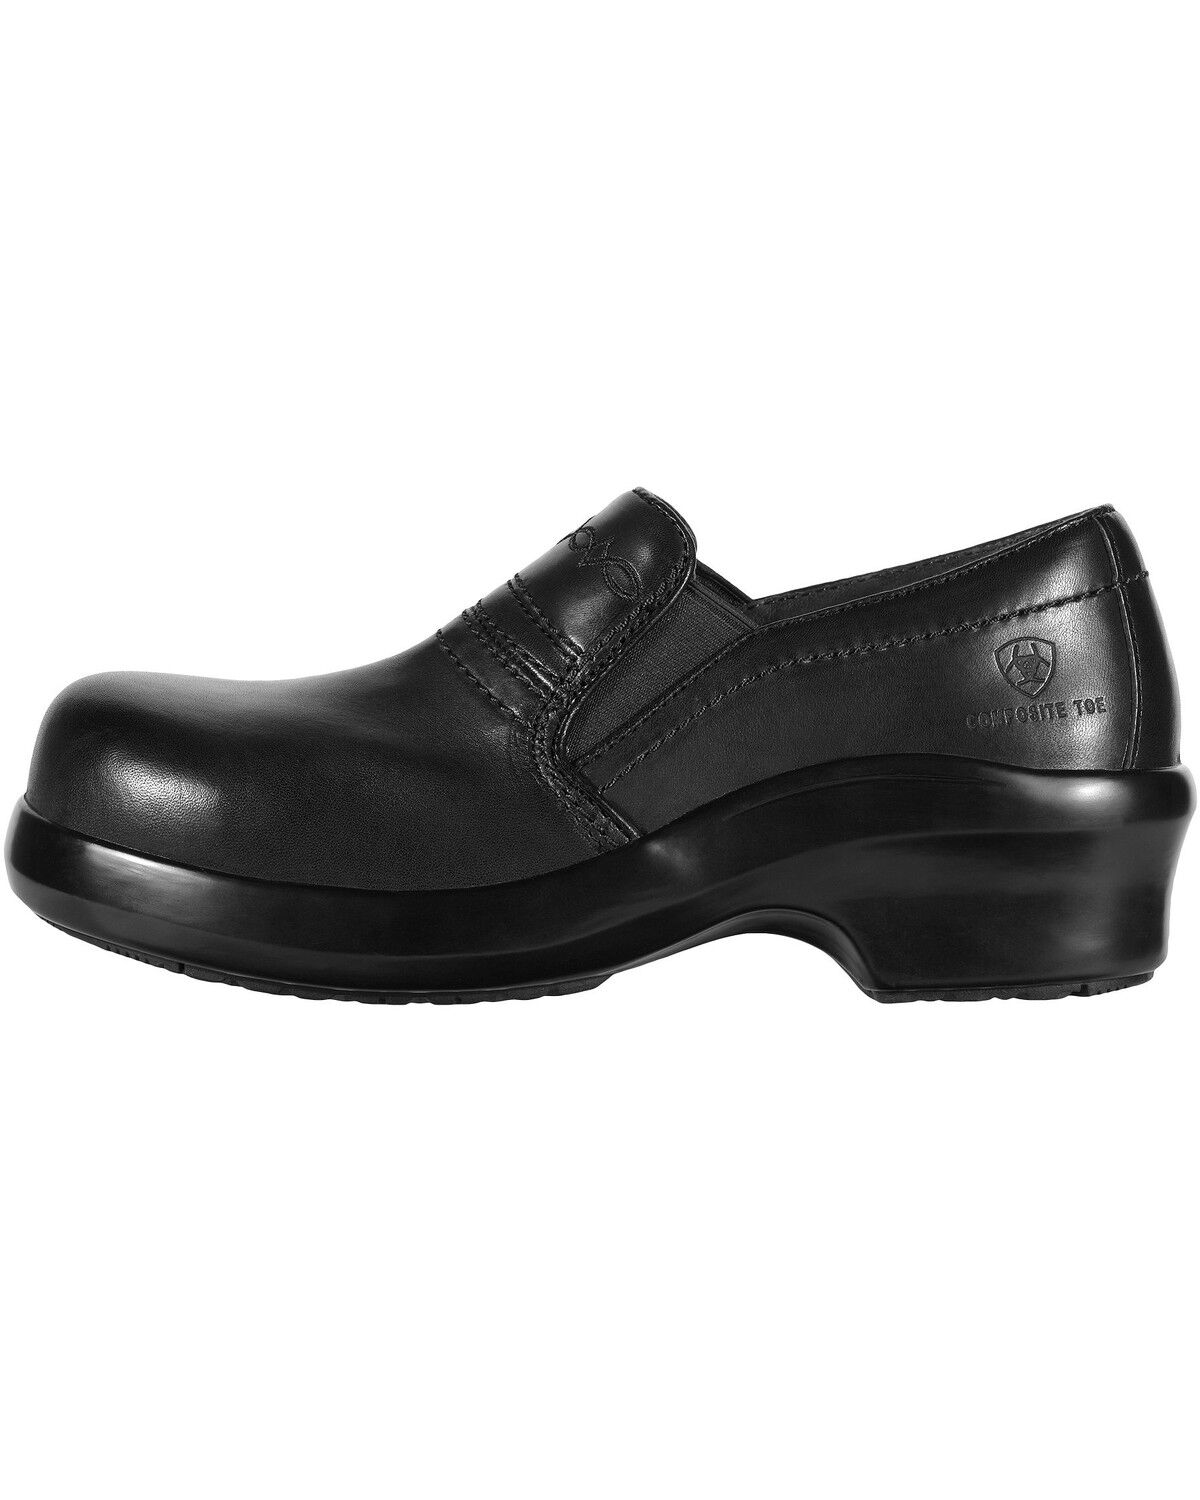 Ariat Expert Safety Clog Slip-On Shoes